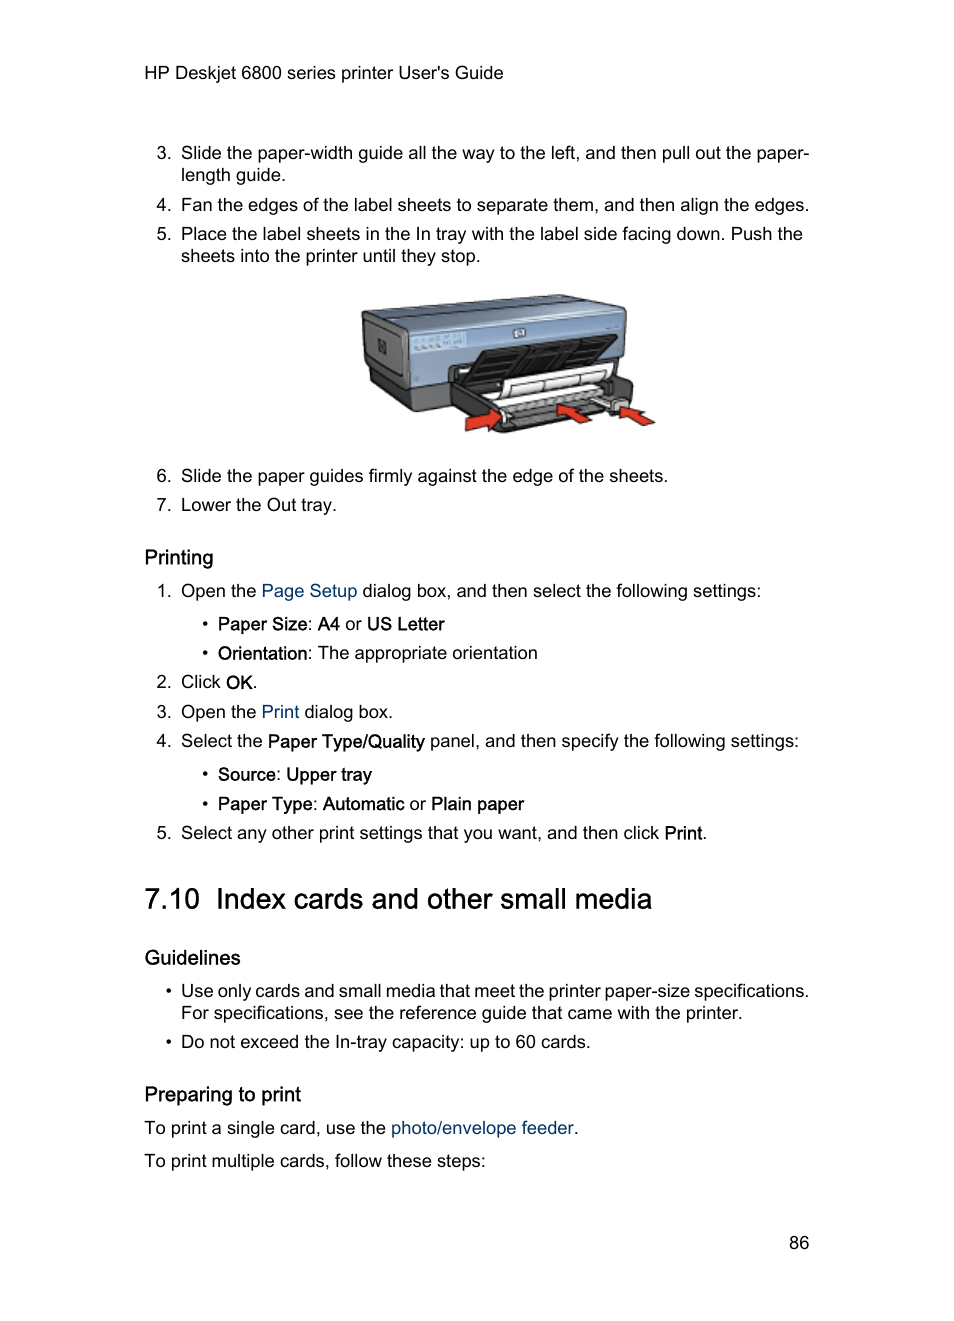 Printing, 10 index cards and other small media, Guidelines